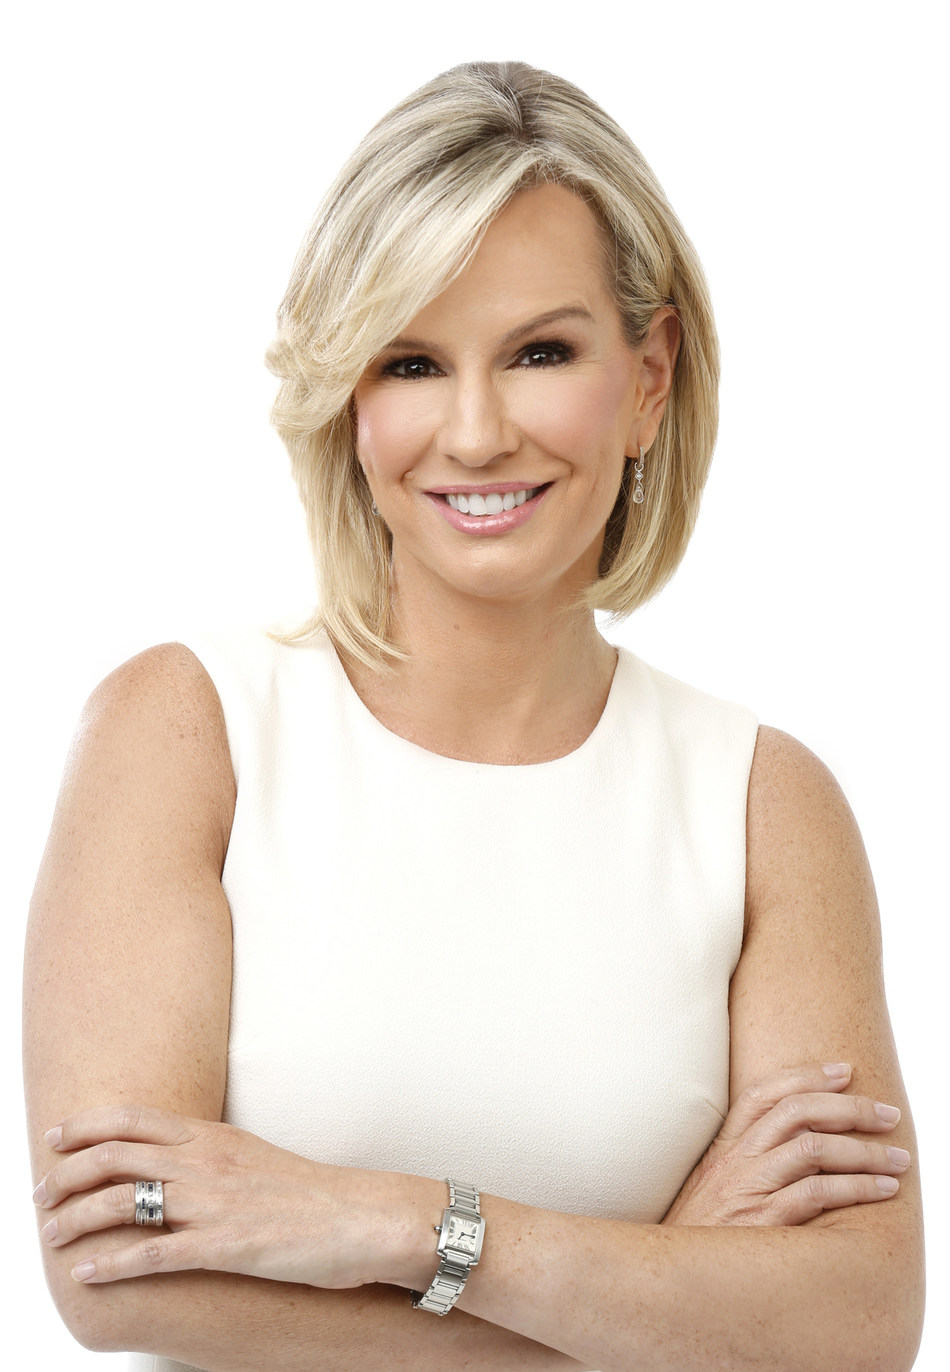 Dr. Jennifer Ashton, ABC News Chief Medical Correspondent, Good Morning America